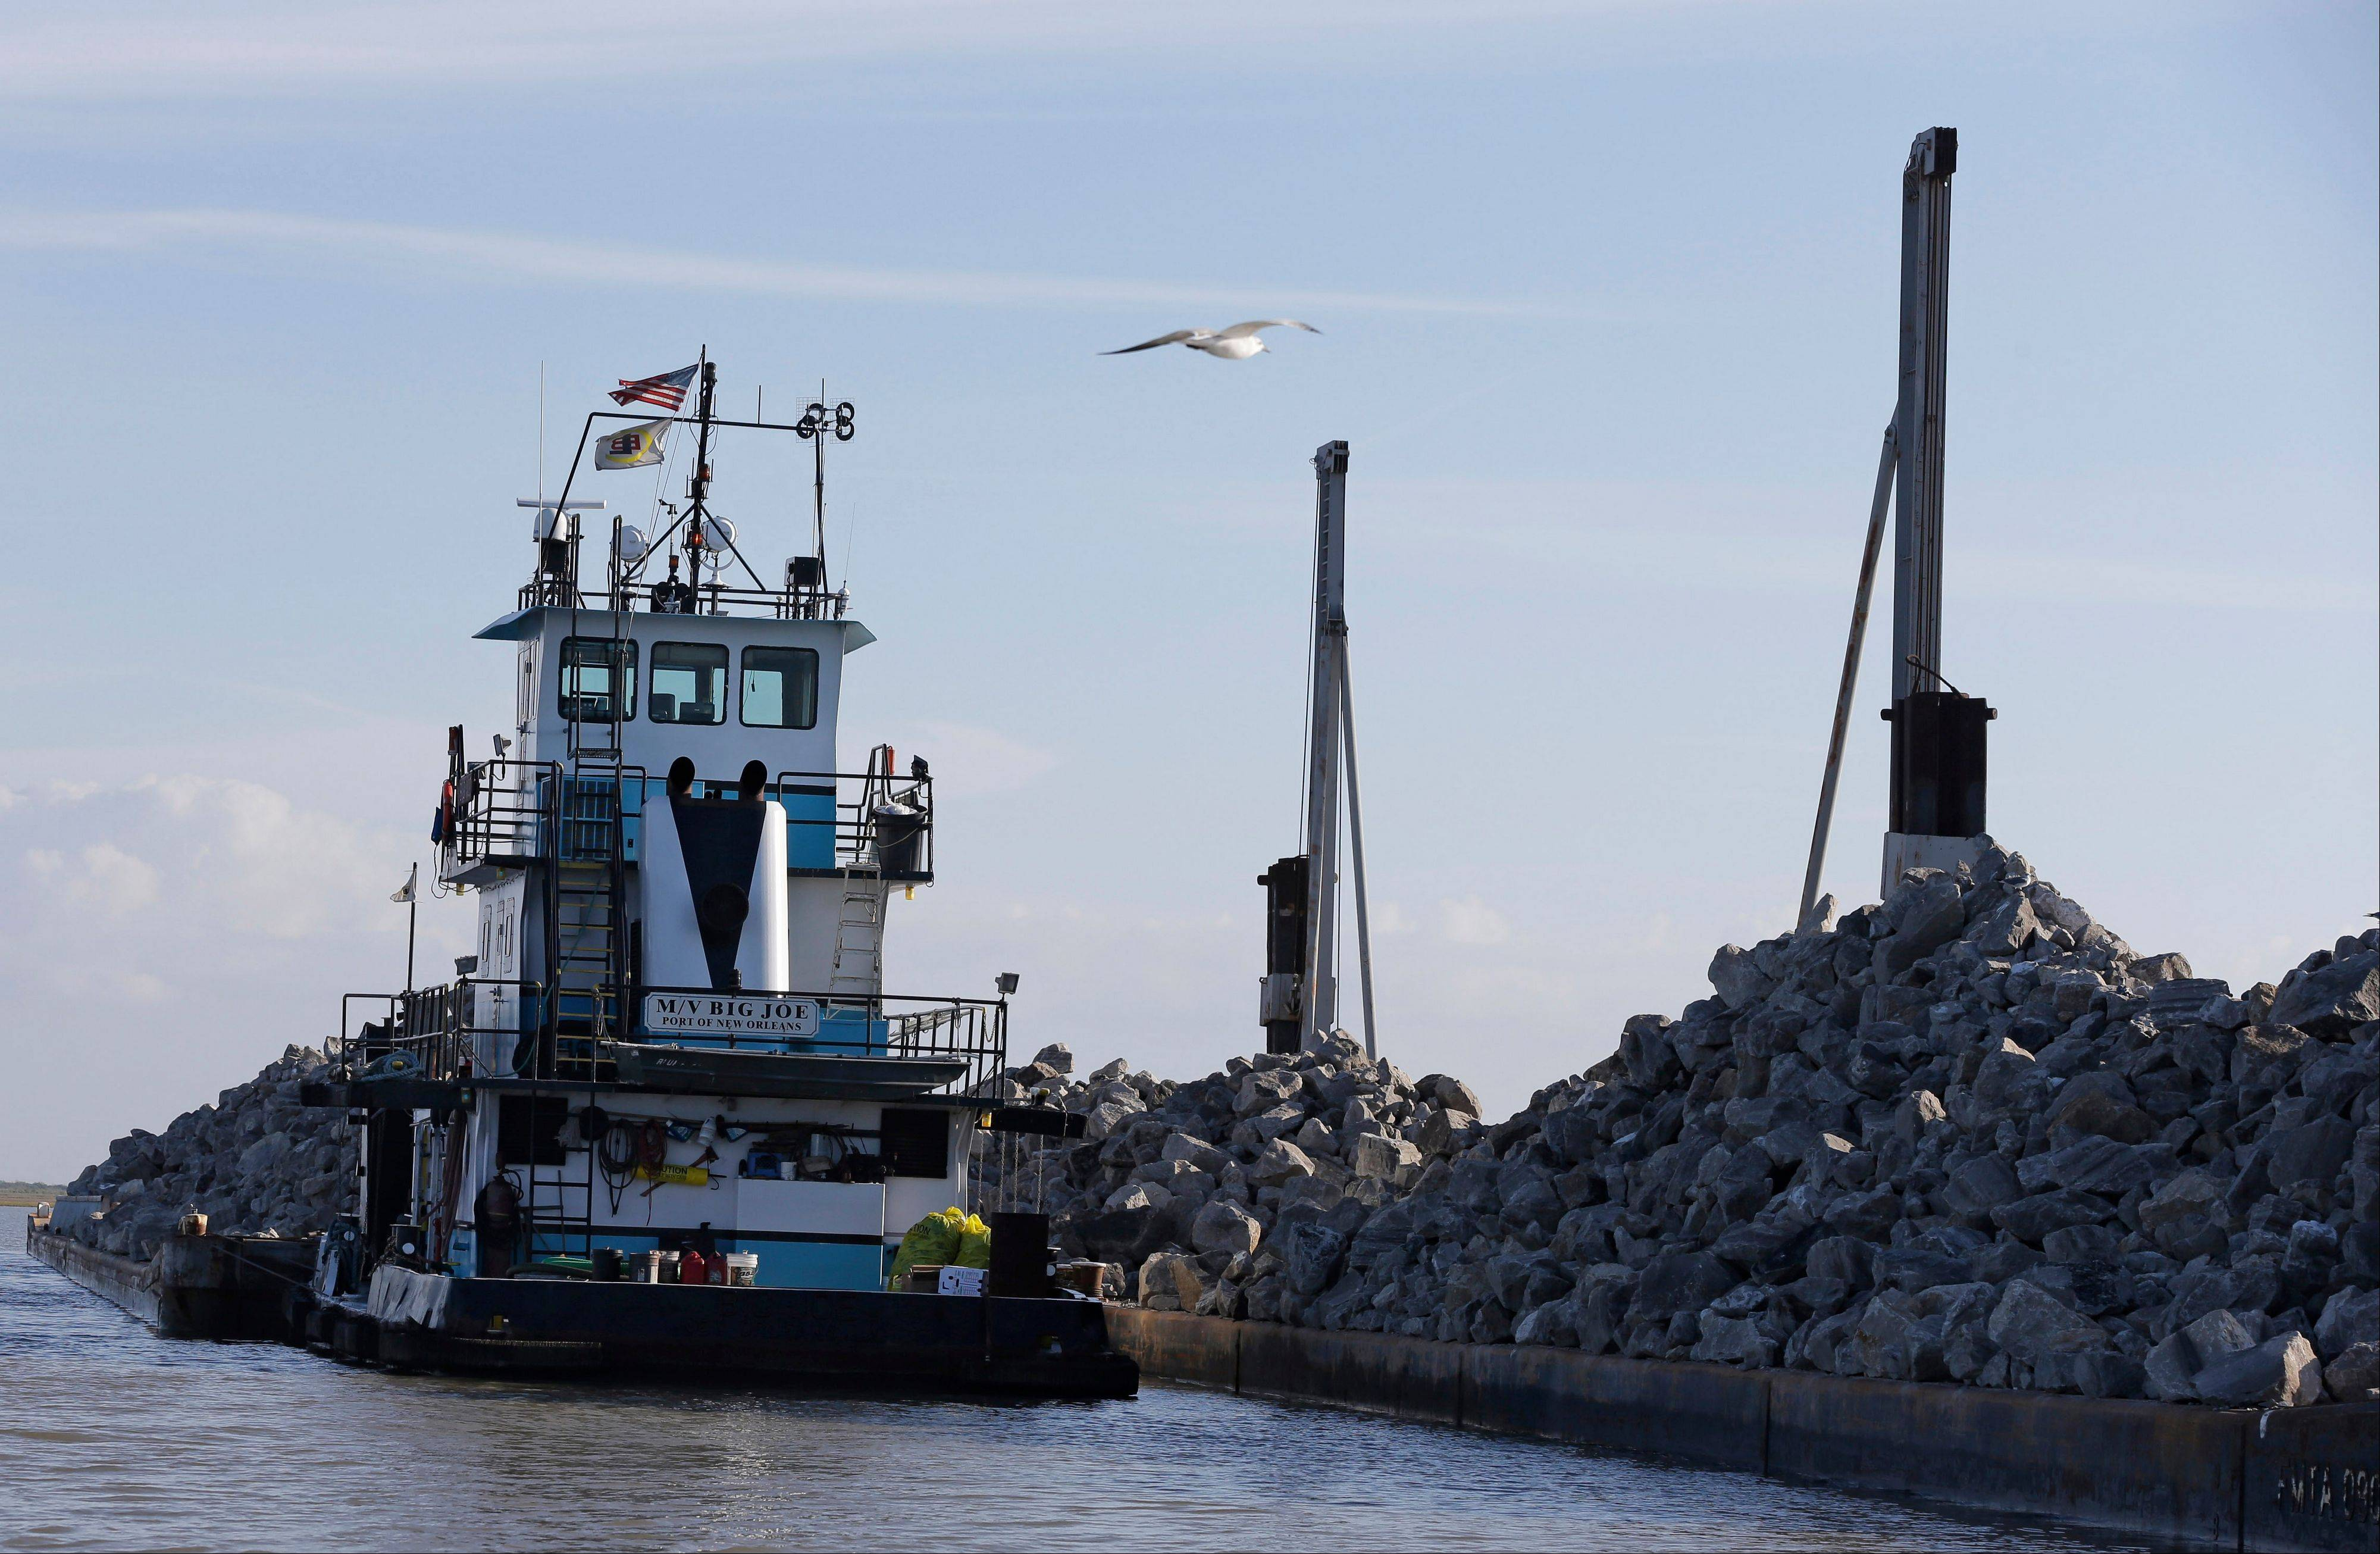 A bird flies past a tug boat abutting barges filled with limestone boulders on Tuesday, Oct. 29, 2013 in the Gulf of Mexico. The boulders will be dropped into the water off the Texas coast in one of the largest oyster reef restoration projects in the United States.